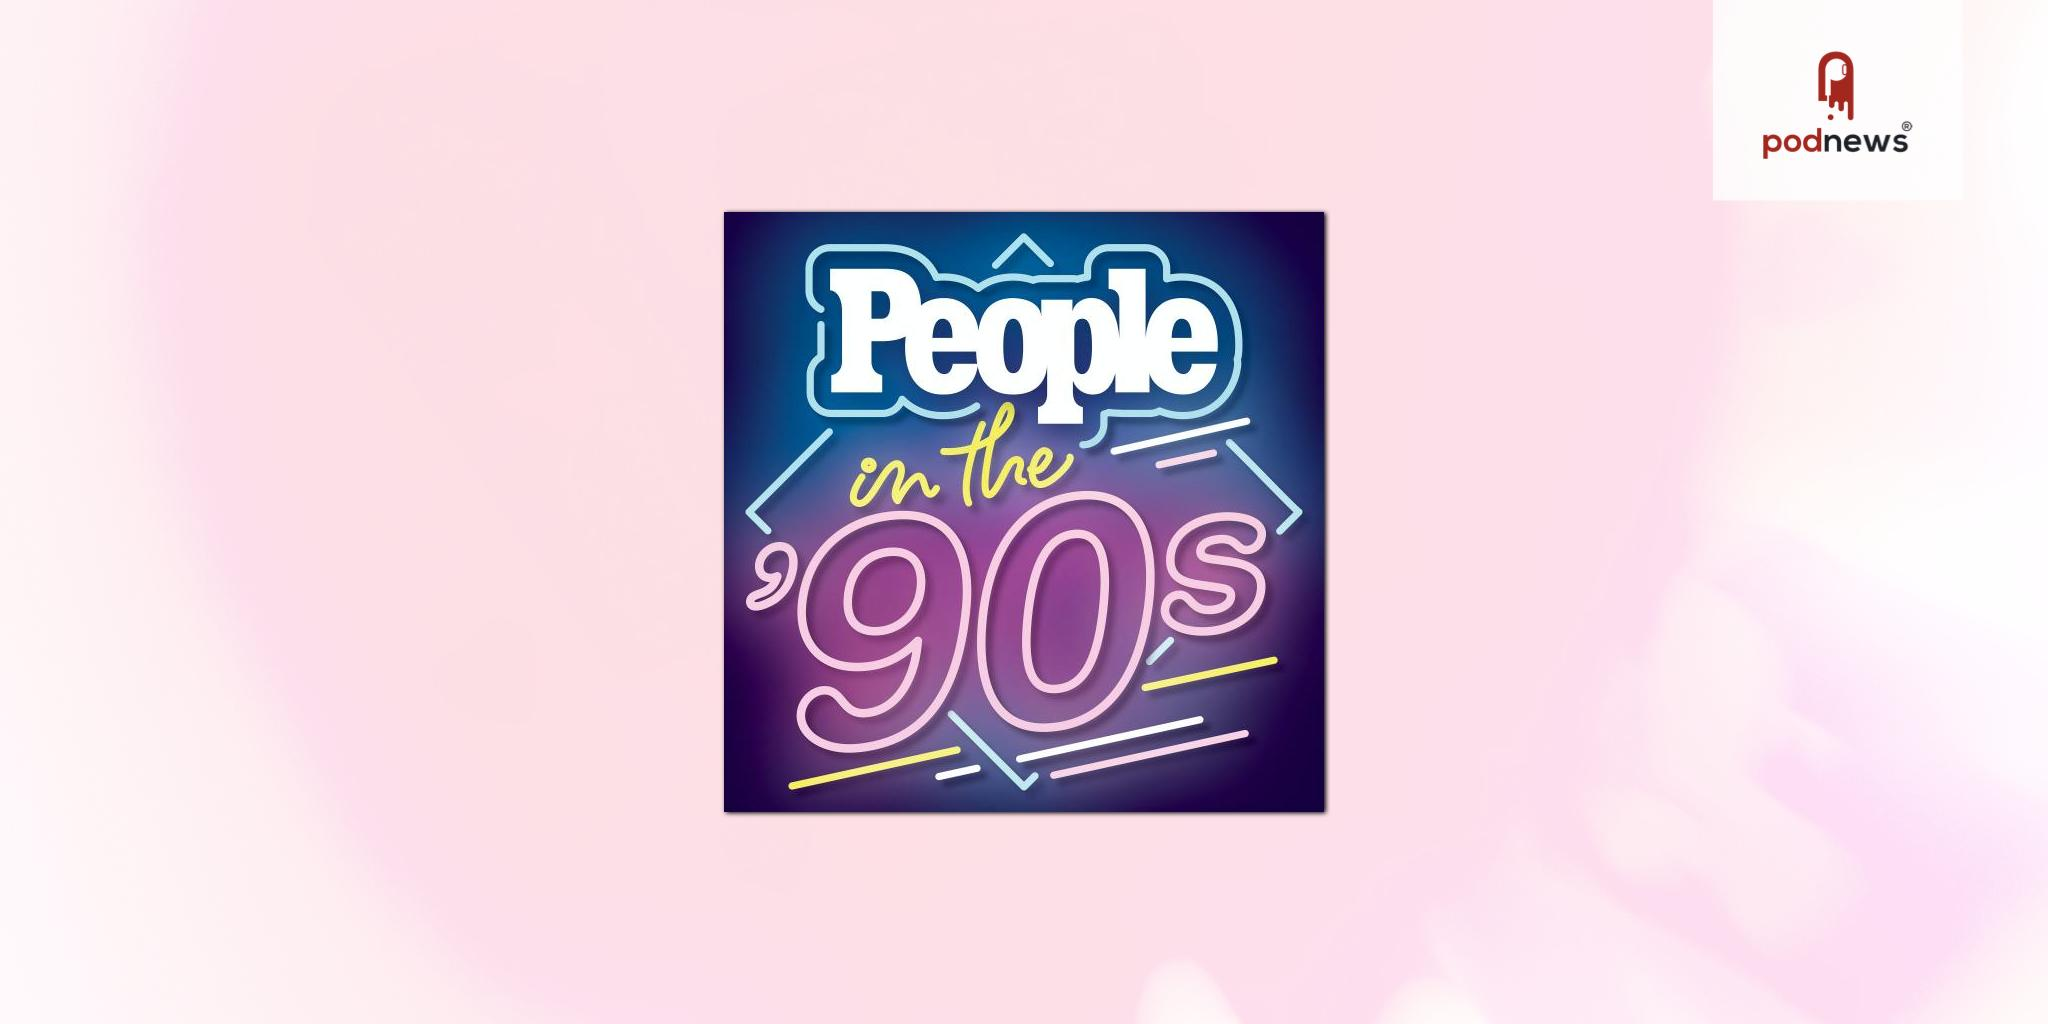 PEOPLE launched new weekly podcast, PEOPLE in the 90s